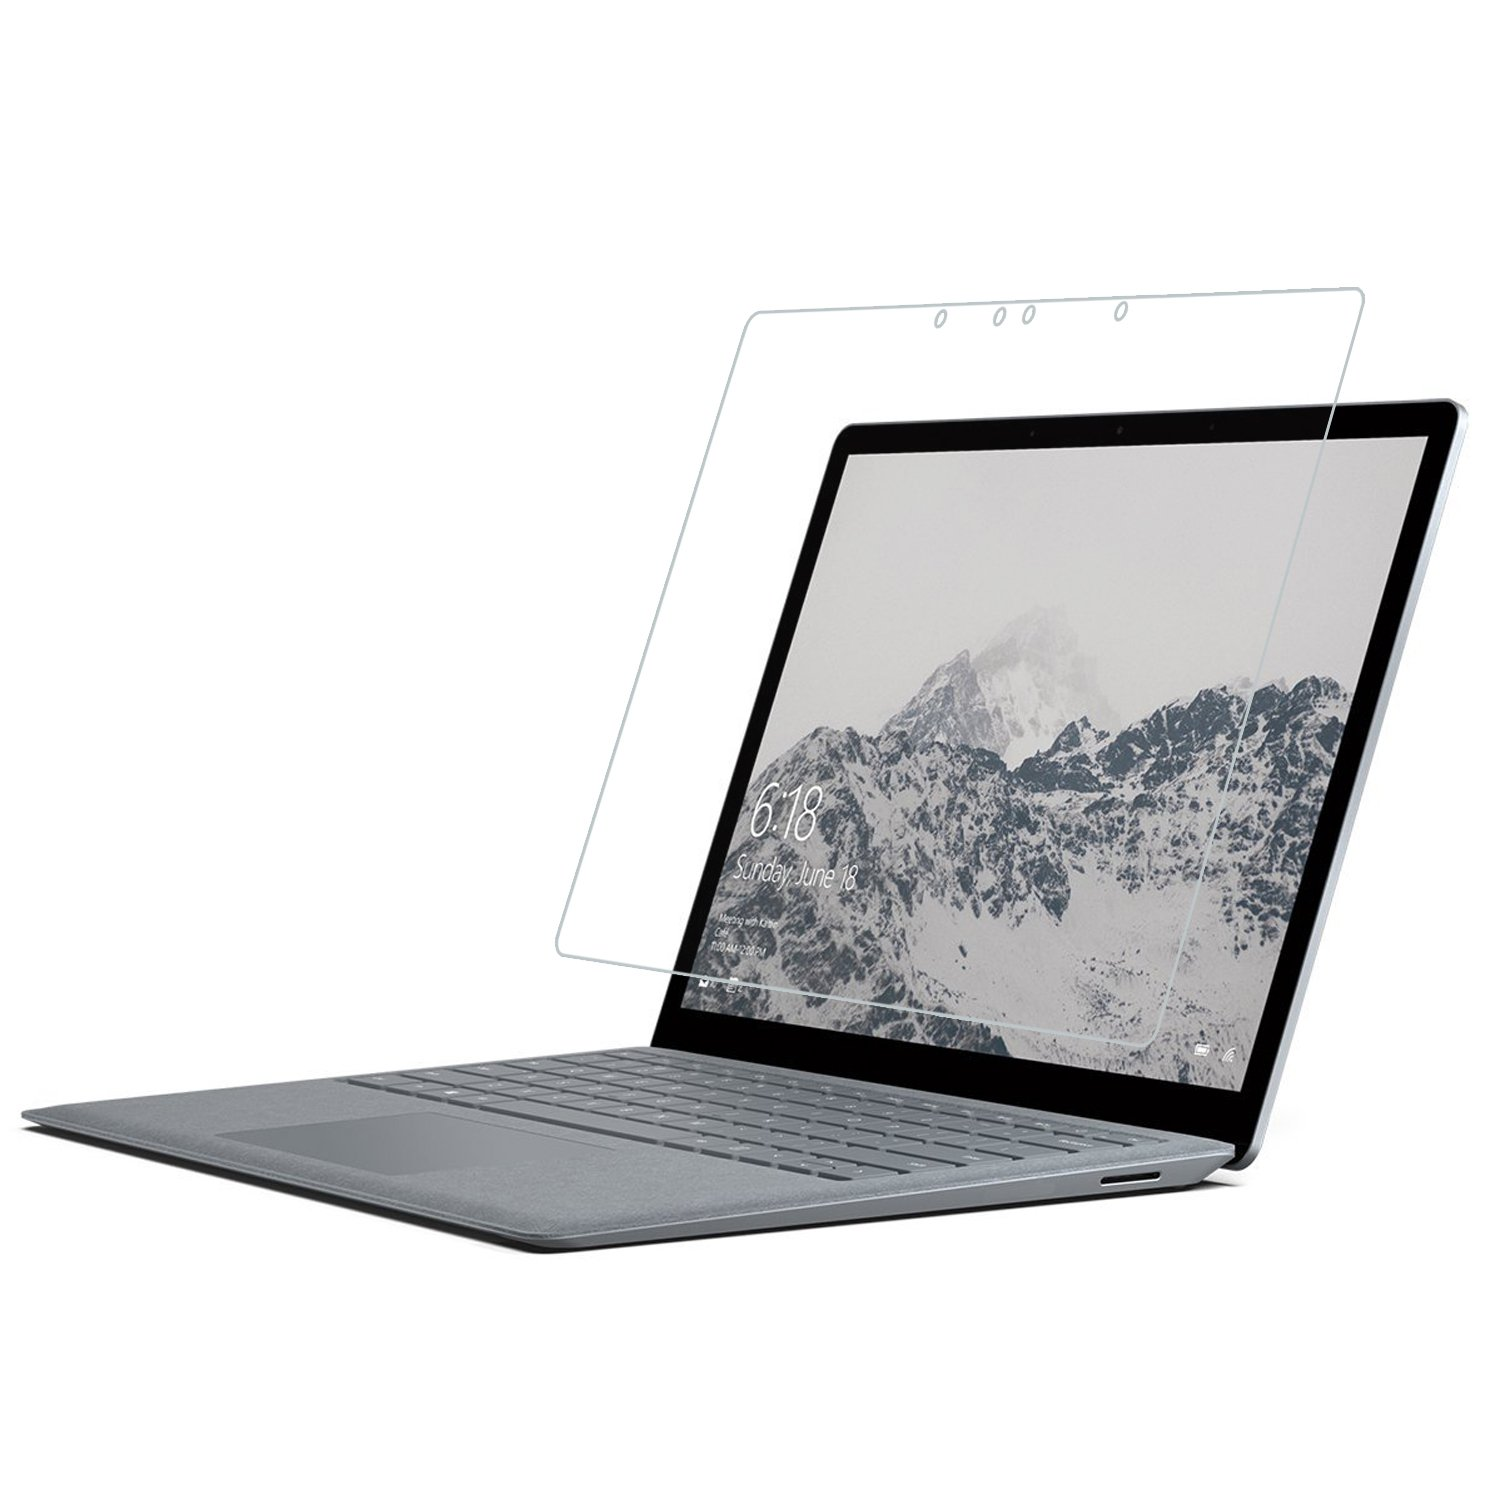 7e5672c6c8bb6 Microsoft Surface Laptop 13.5 Inch Screen Protector Glass - Buy ...